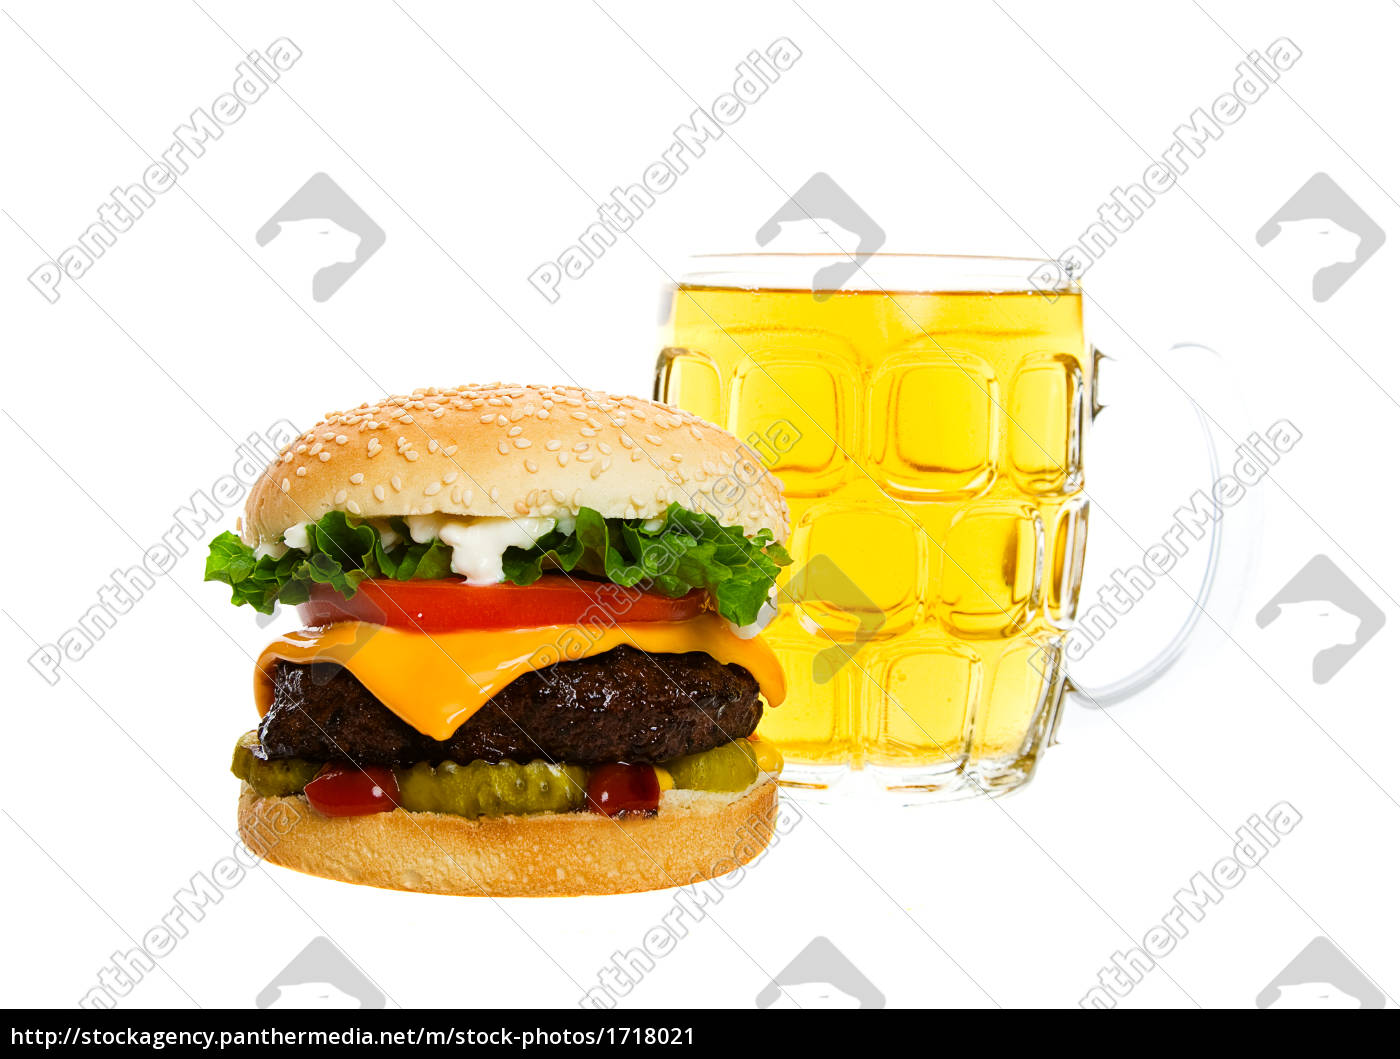 a, beer, and, a, burger - 1718021